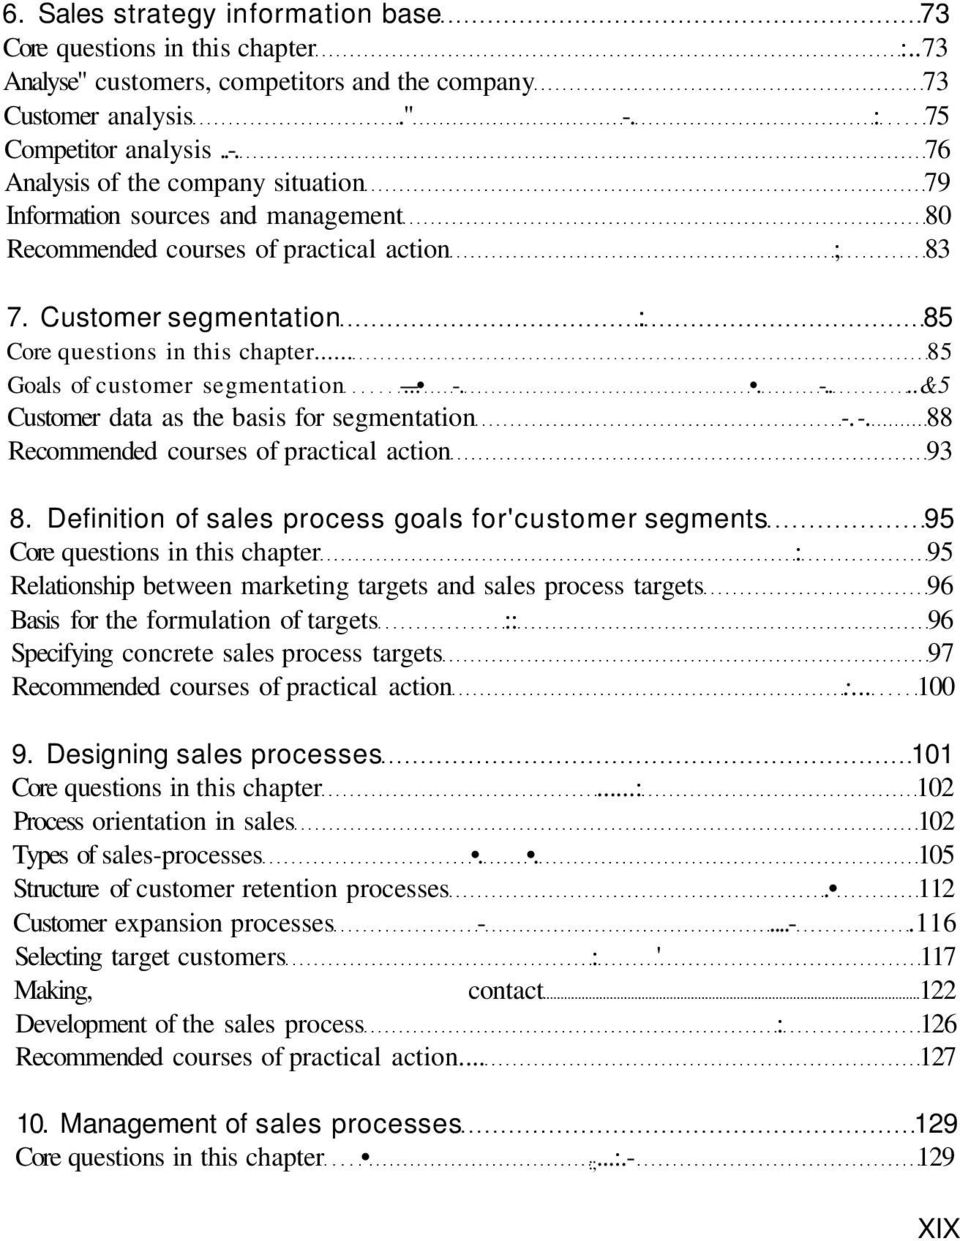 Customer segmentation : 85 Core questions in this chapter... 85 Goals of customer segmentation -.-.-. -.. -....&5 Customer data as the basis for segmentation -.-. 88 Recommended courses of practical action 93 8.